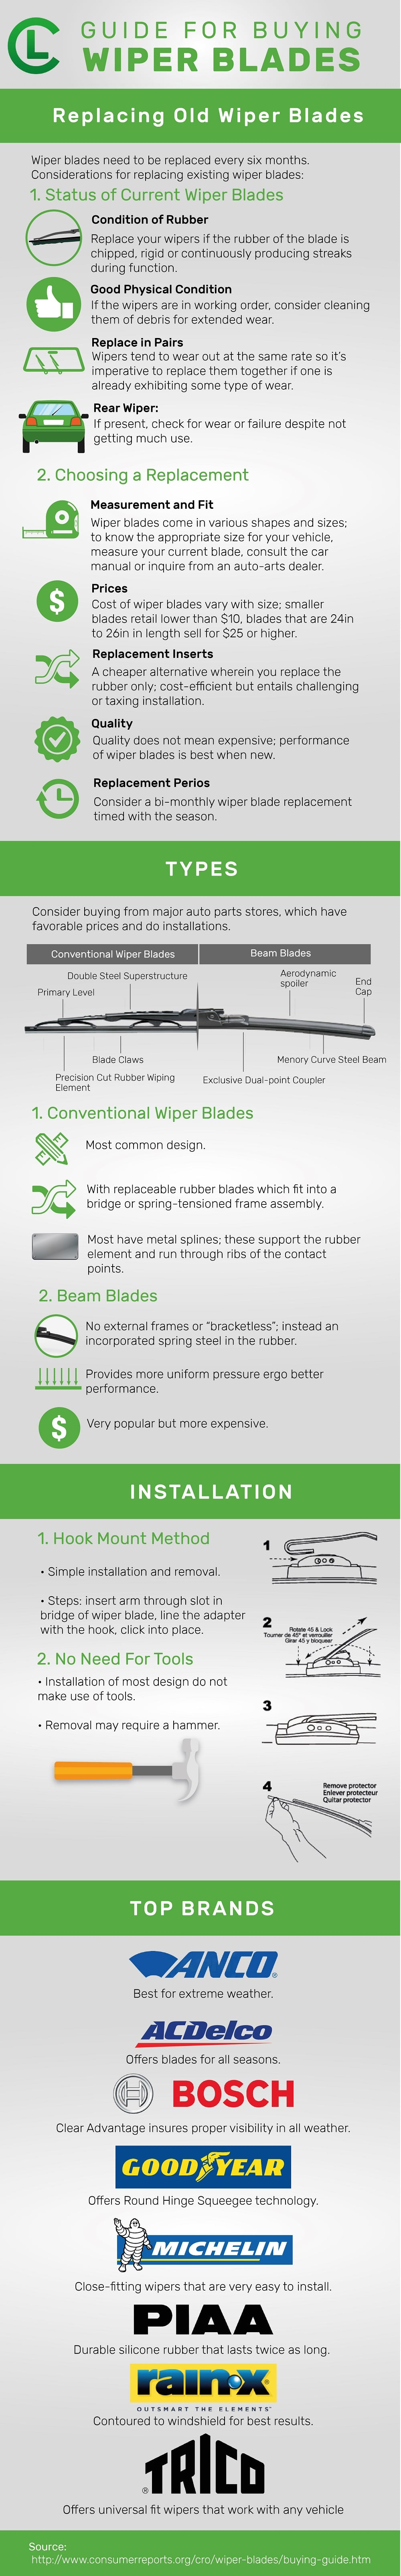 Guide For Buying Wiper Blades